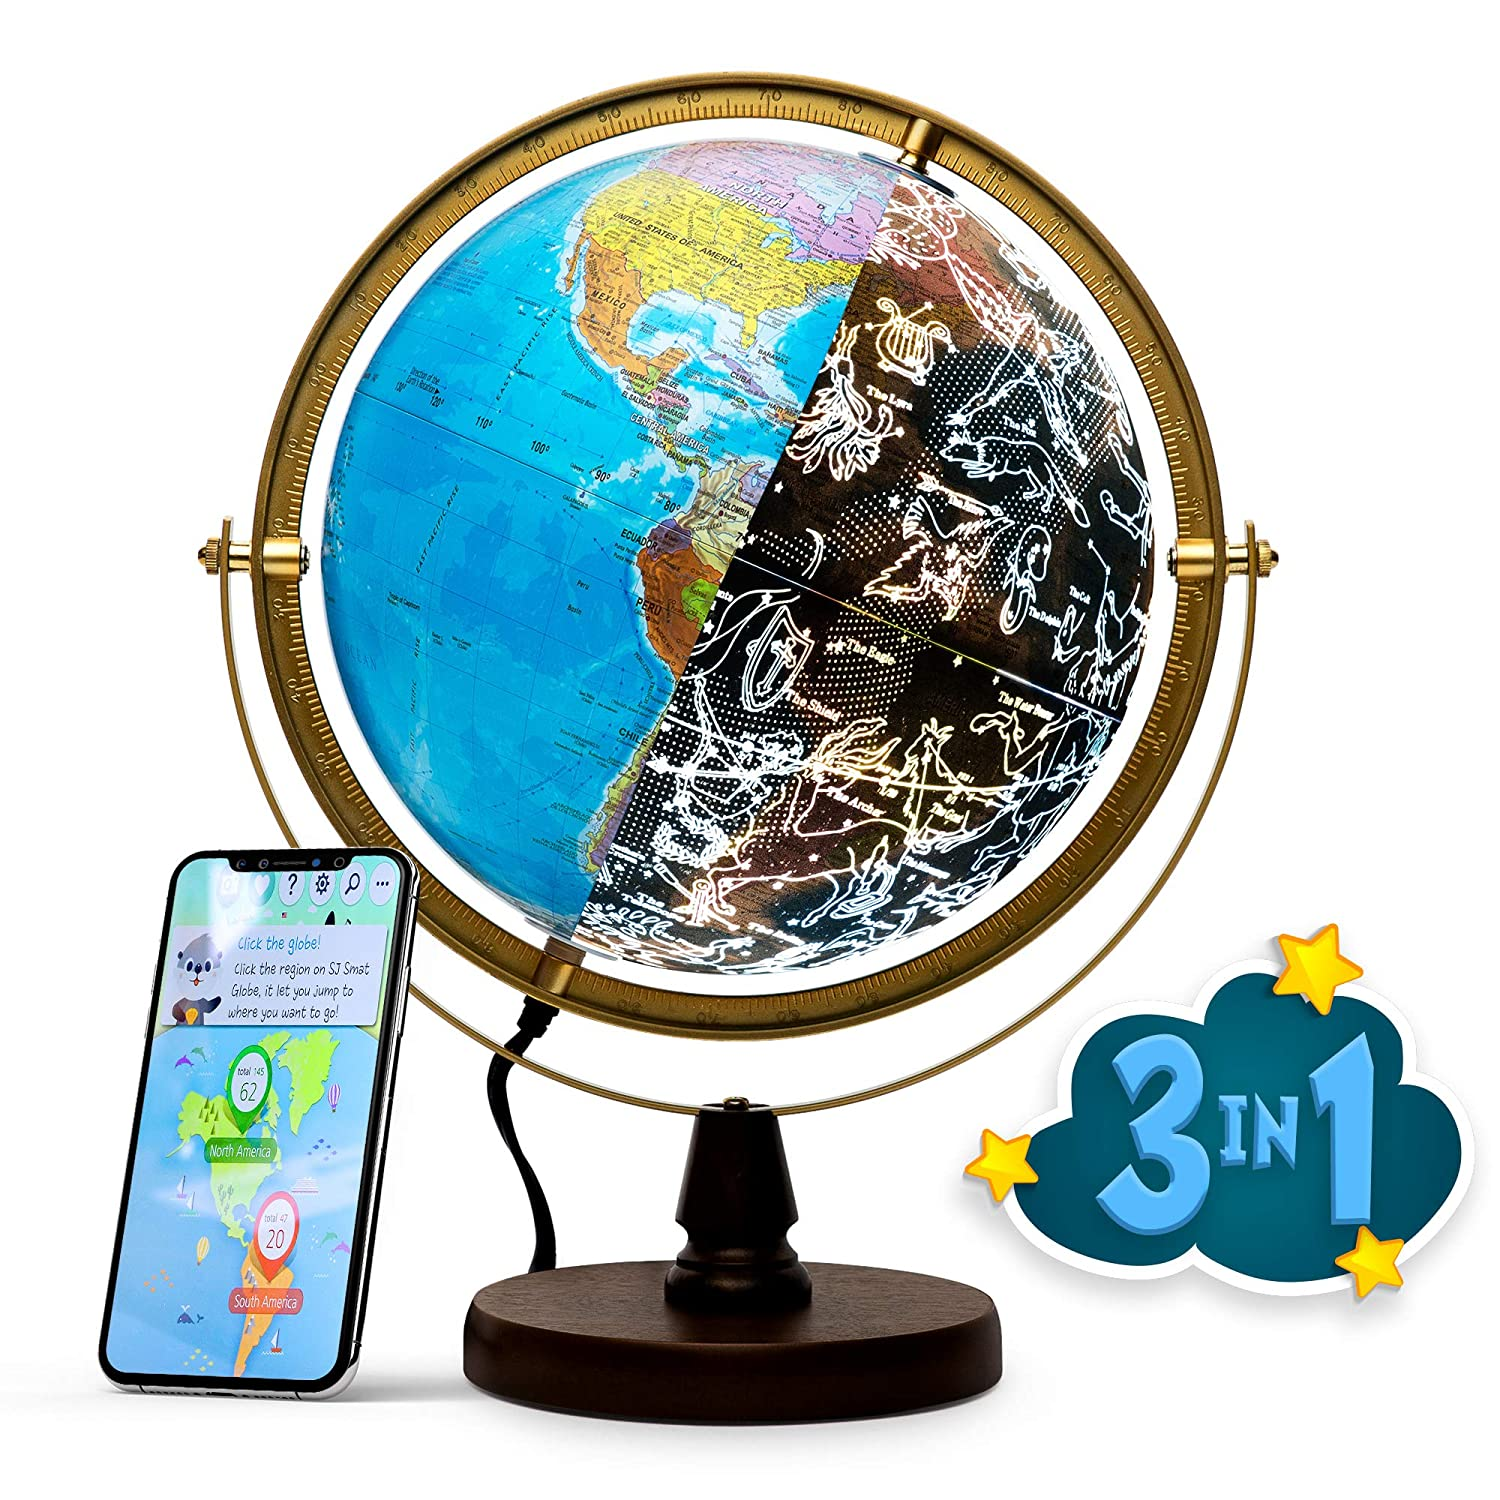 The Best Ipad Apps For Toddlers New Atlas >> Sjsmartglobe With Interactive App Led Illuminated Constellations At Night Educational Content For Kids Us Certified Led Us Patented Stem Toy